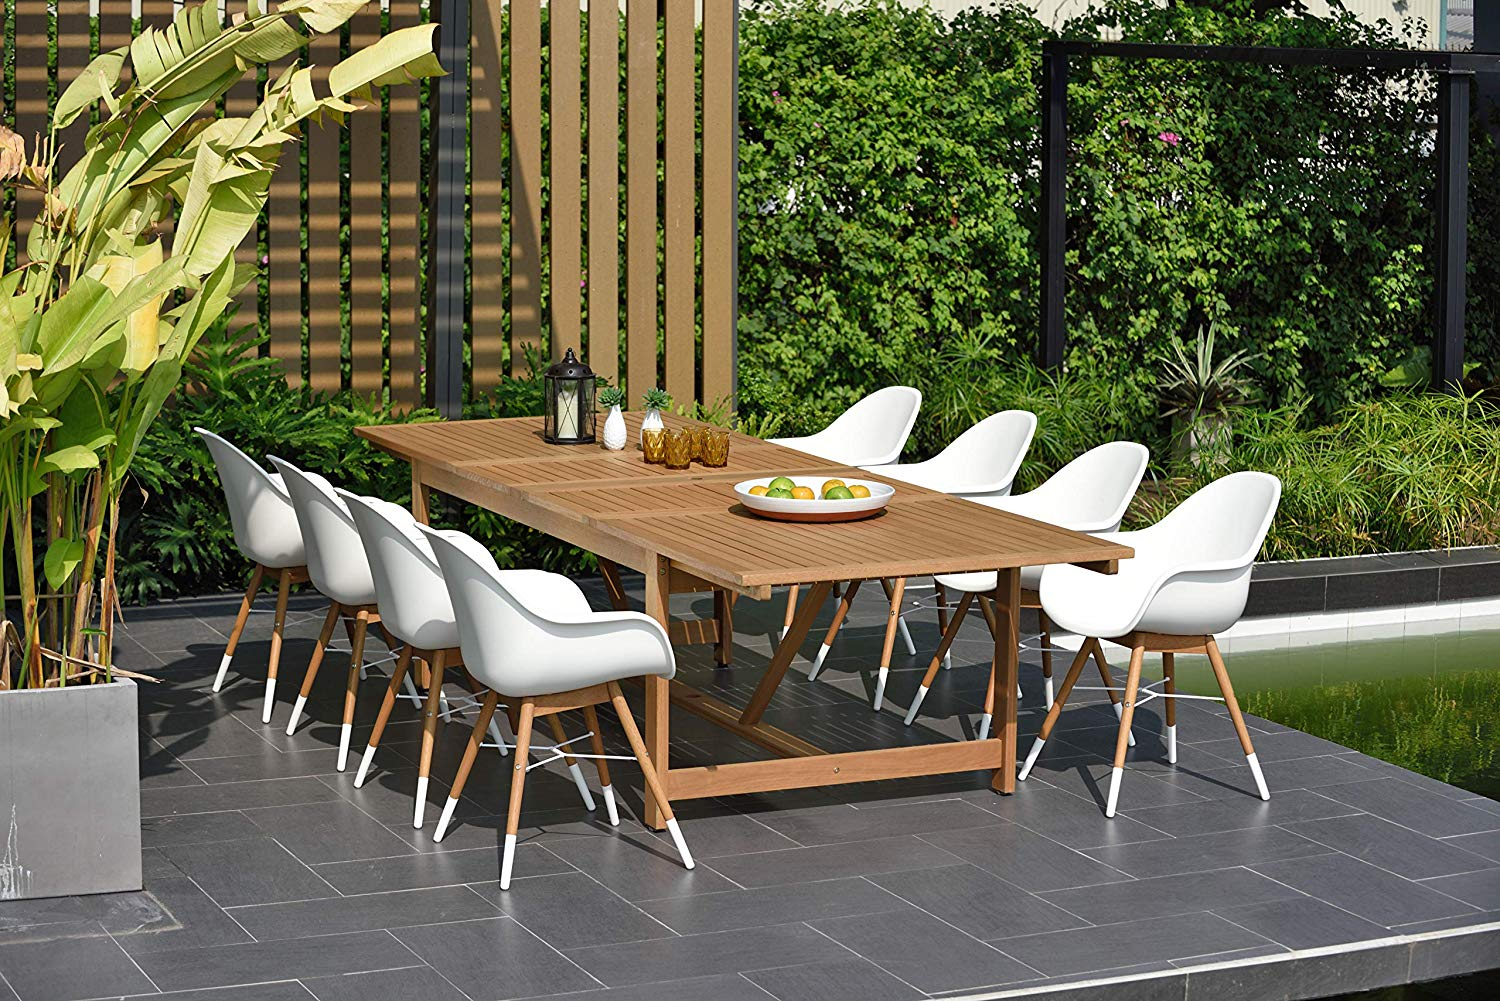 Brampton 9 Piece Outdoor Eucalyptus Extendable Dining Set